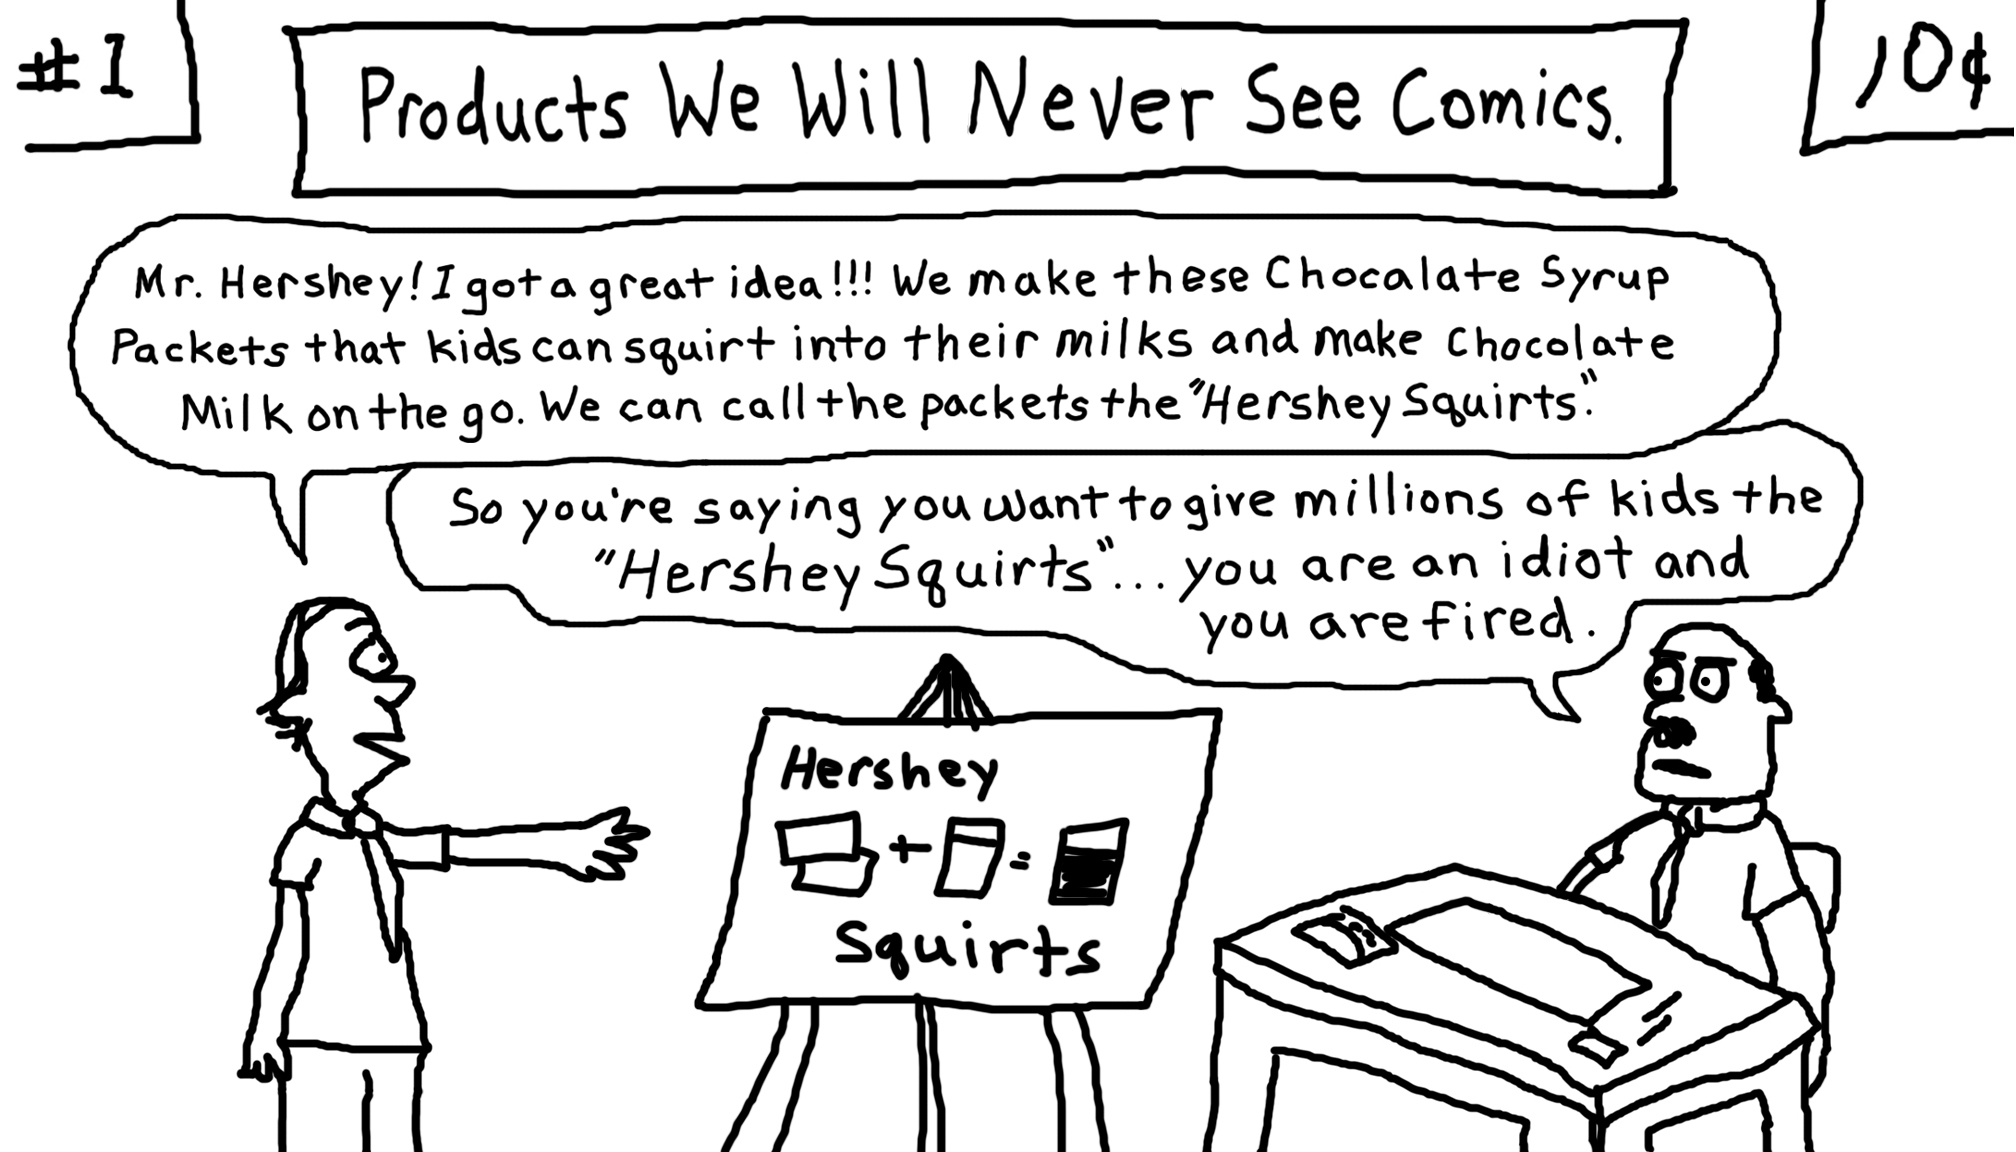 Hershey squirts.